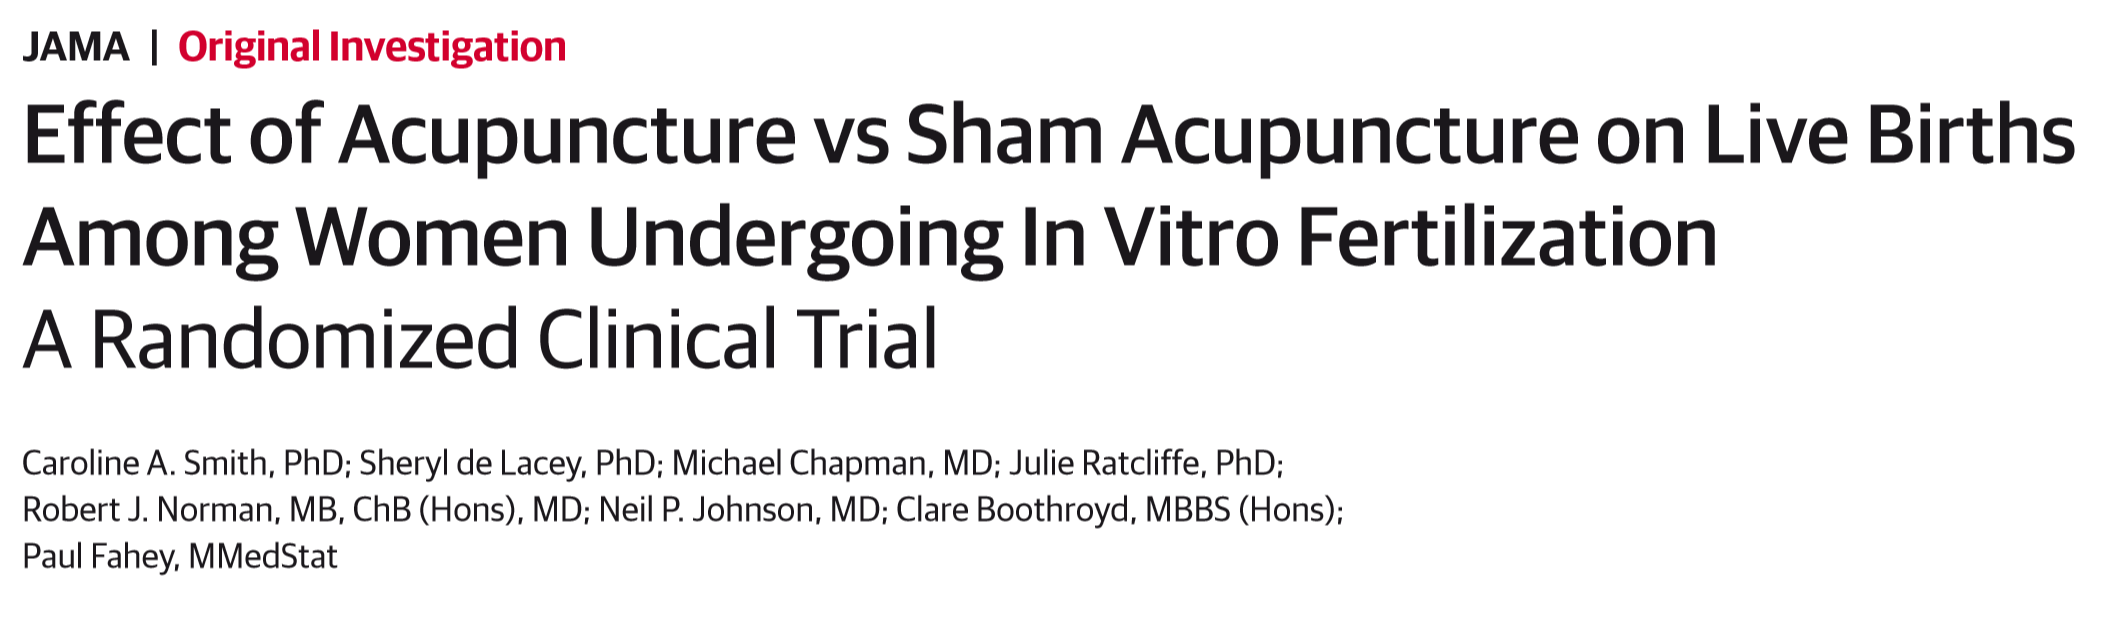 Effect of Acupuncture vs Sham Acupuncture on Live Births Among Women Undergoing In Vitro Fertilization